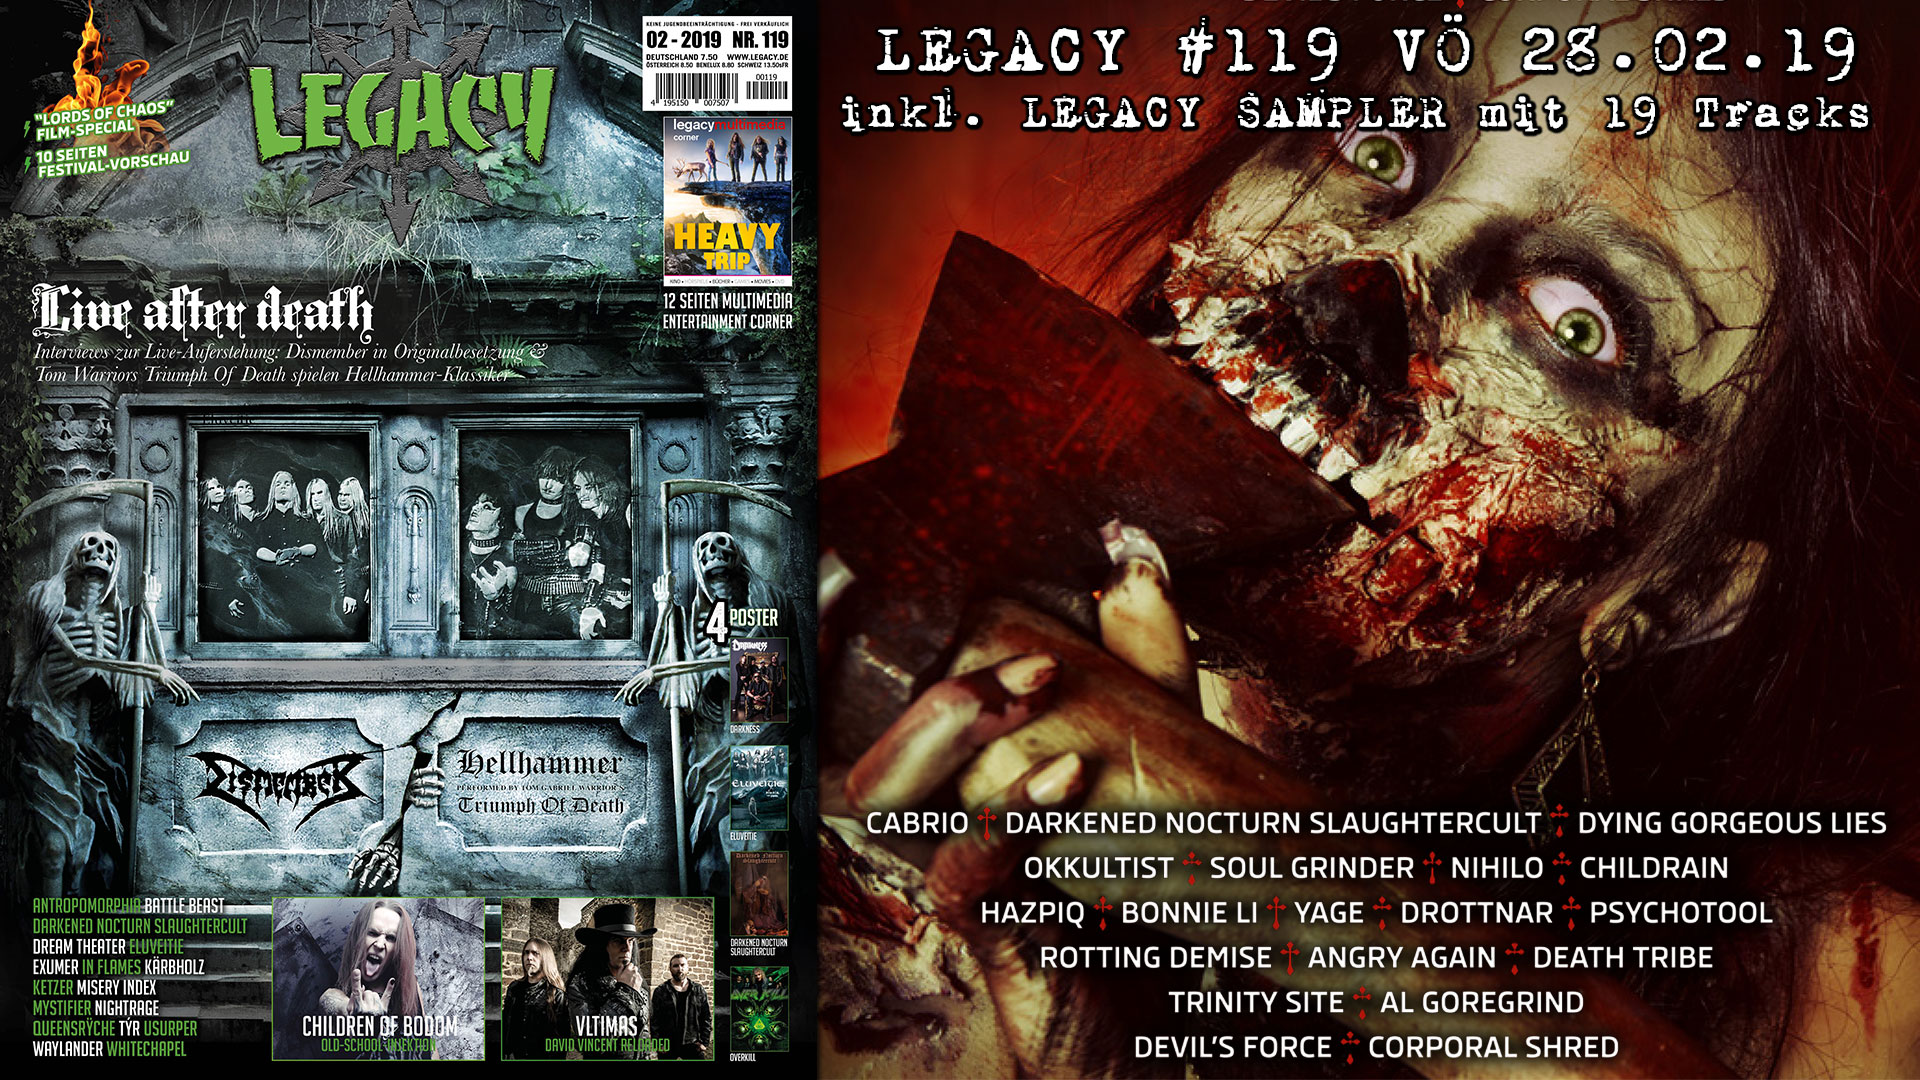 LEGACY #119 out 28.02.2019